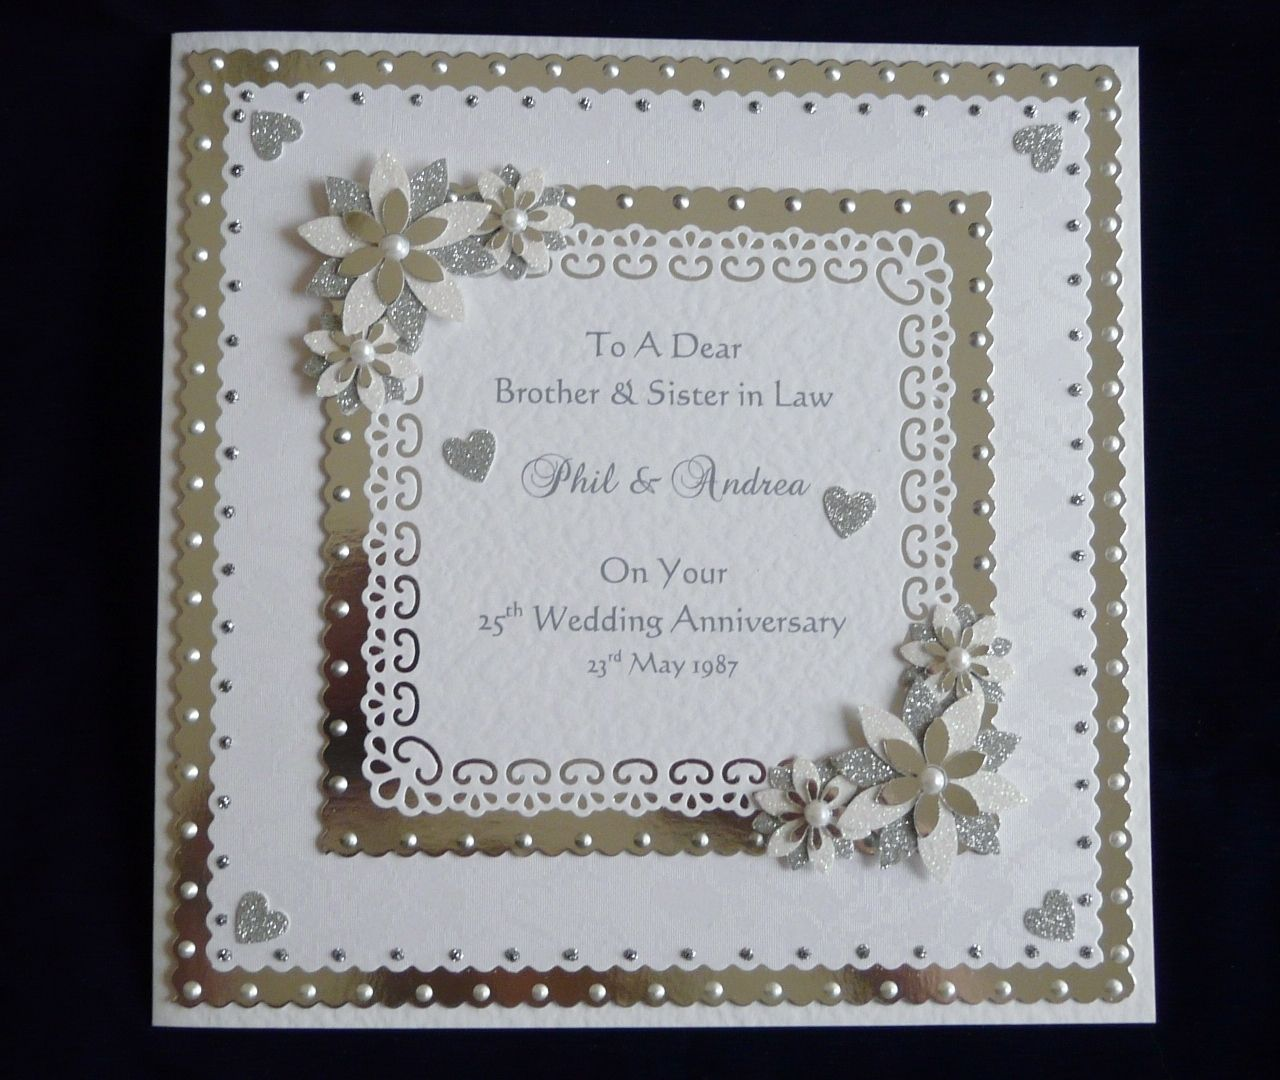 25th60th silver or diamond wedding anniversary card large card handmade personalised silver or diamond 25th60th wedding anniversary card ebay kristyandbryce Choice Image